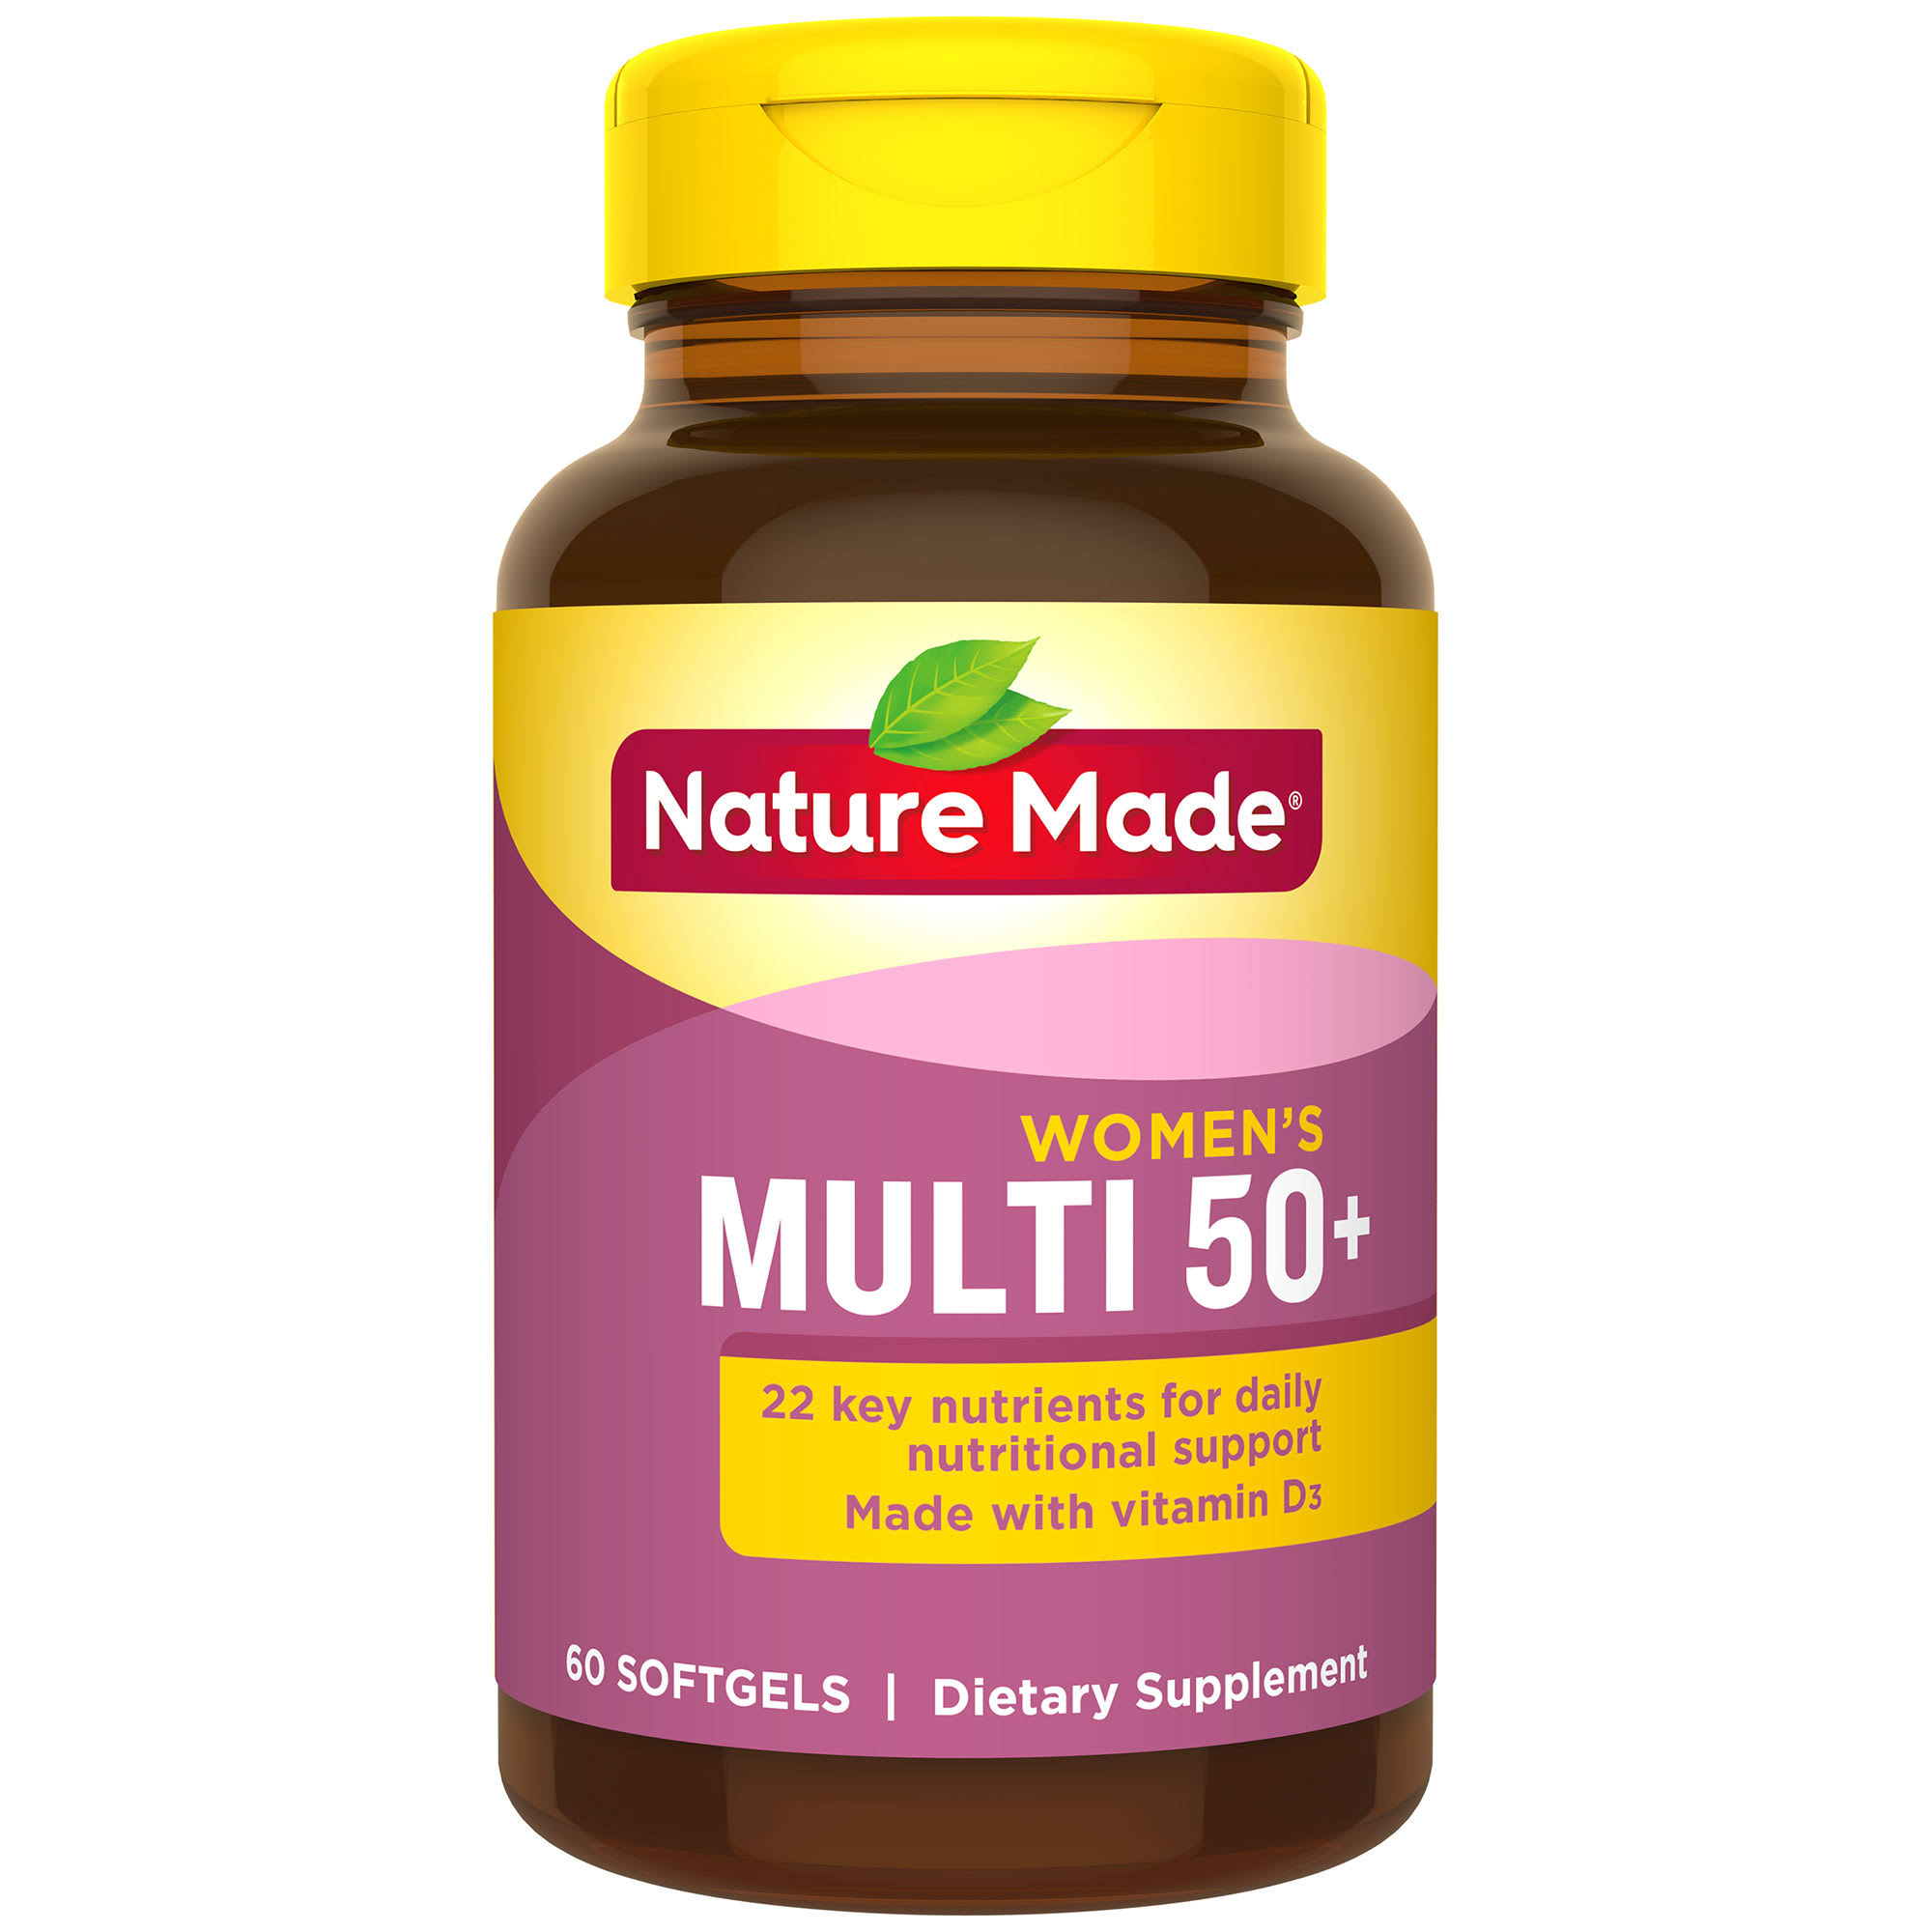 Nature Made Multi For Her 50+ Supplement - 60 Softgels